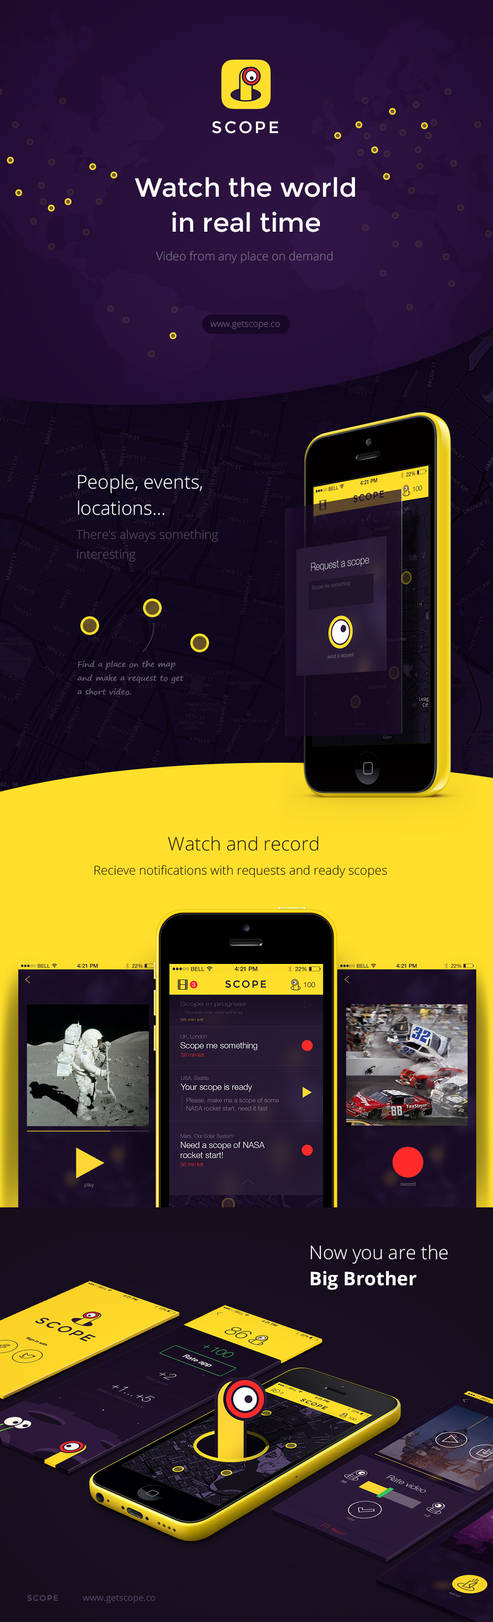 SCOPE - Social Video Messenger by indestudio